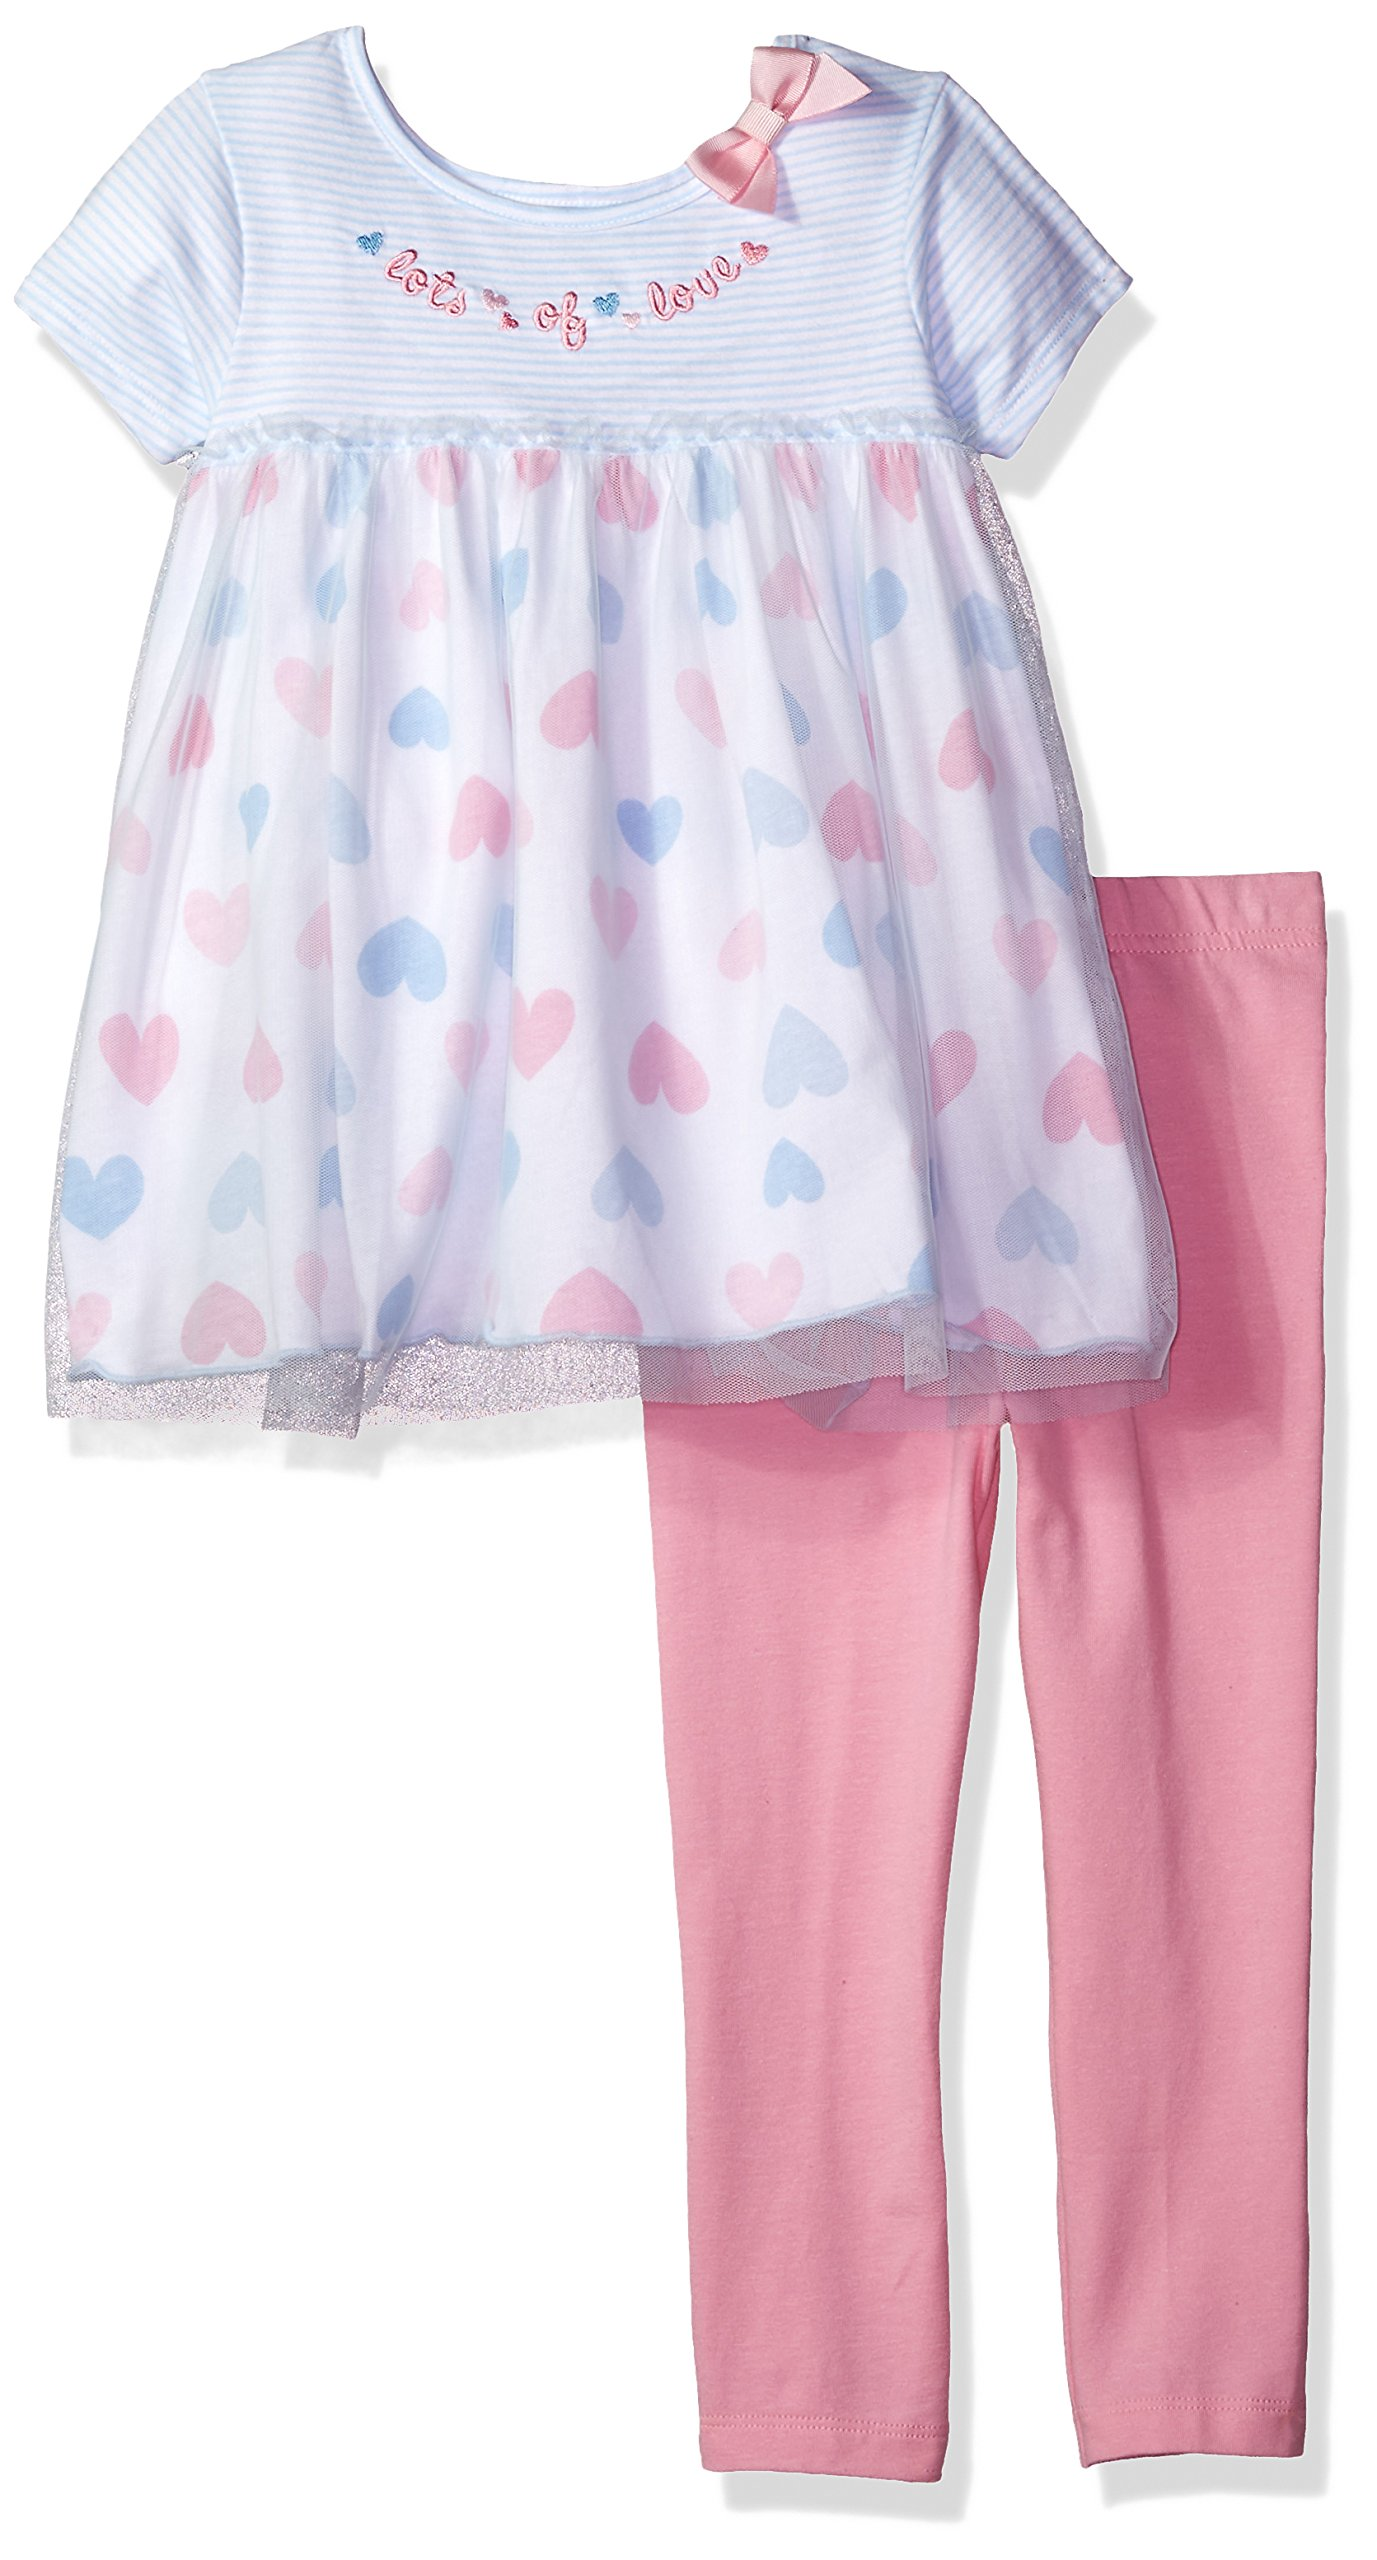 Gerber Toddler Girls' Tunic and Legging Set, Hearts, 5T